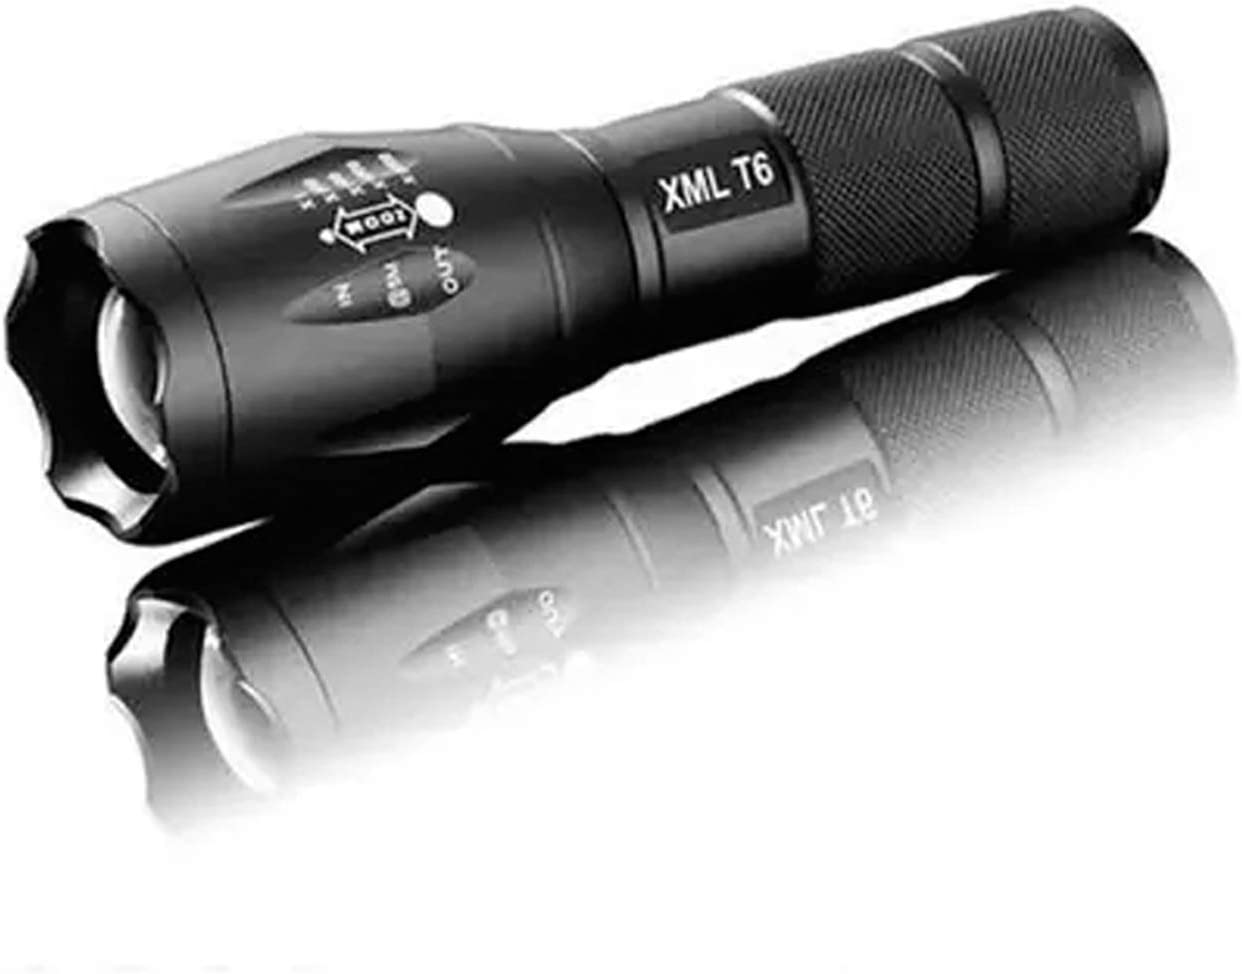 High Power Led Tactical - Lumens Free discount shipping New 2000 Flashlight